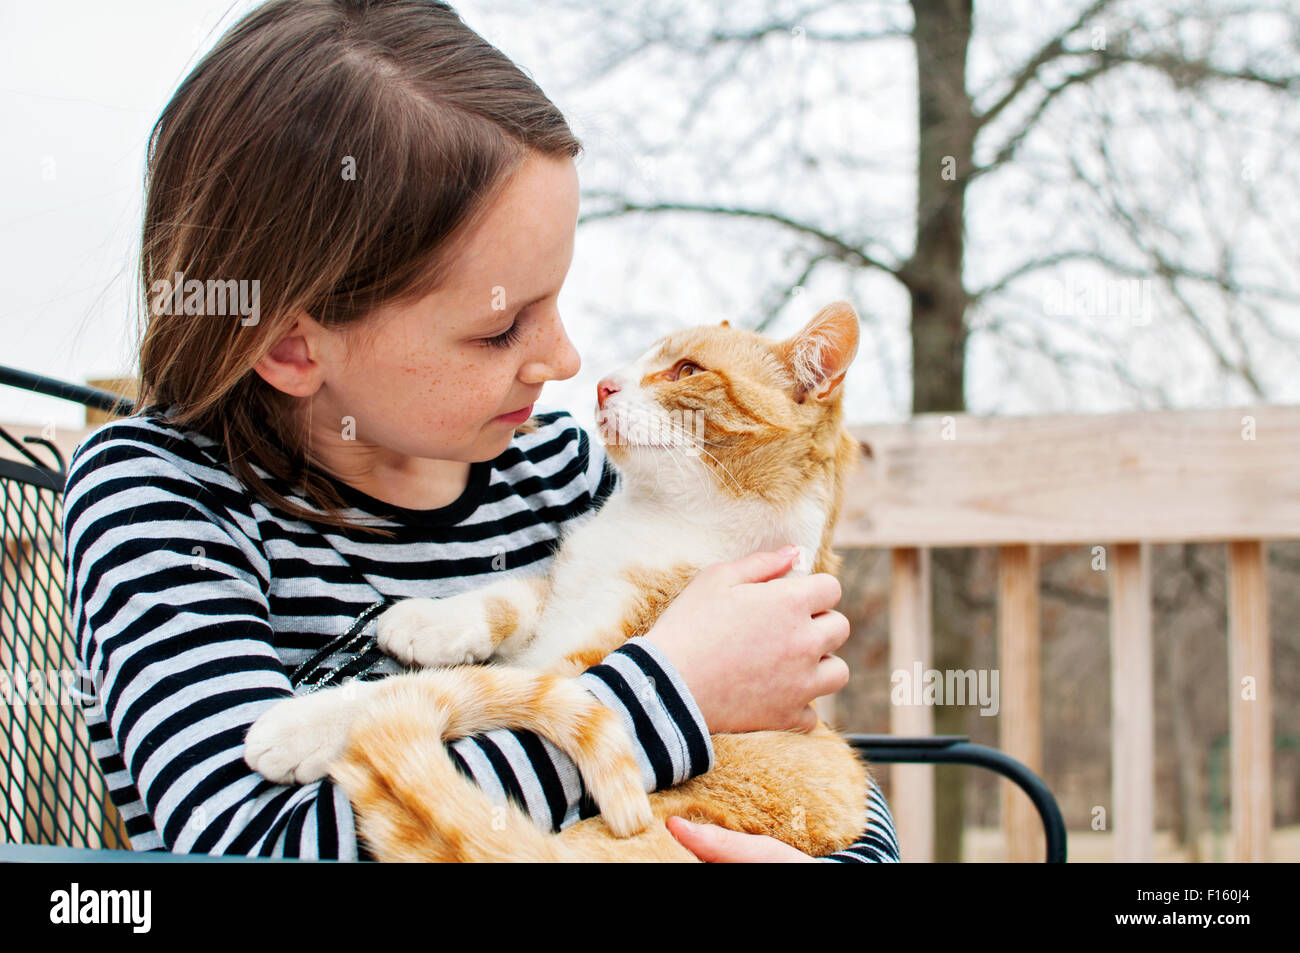 A girl and her cat - Stock Image